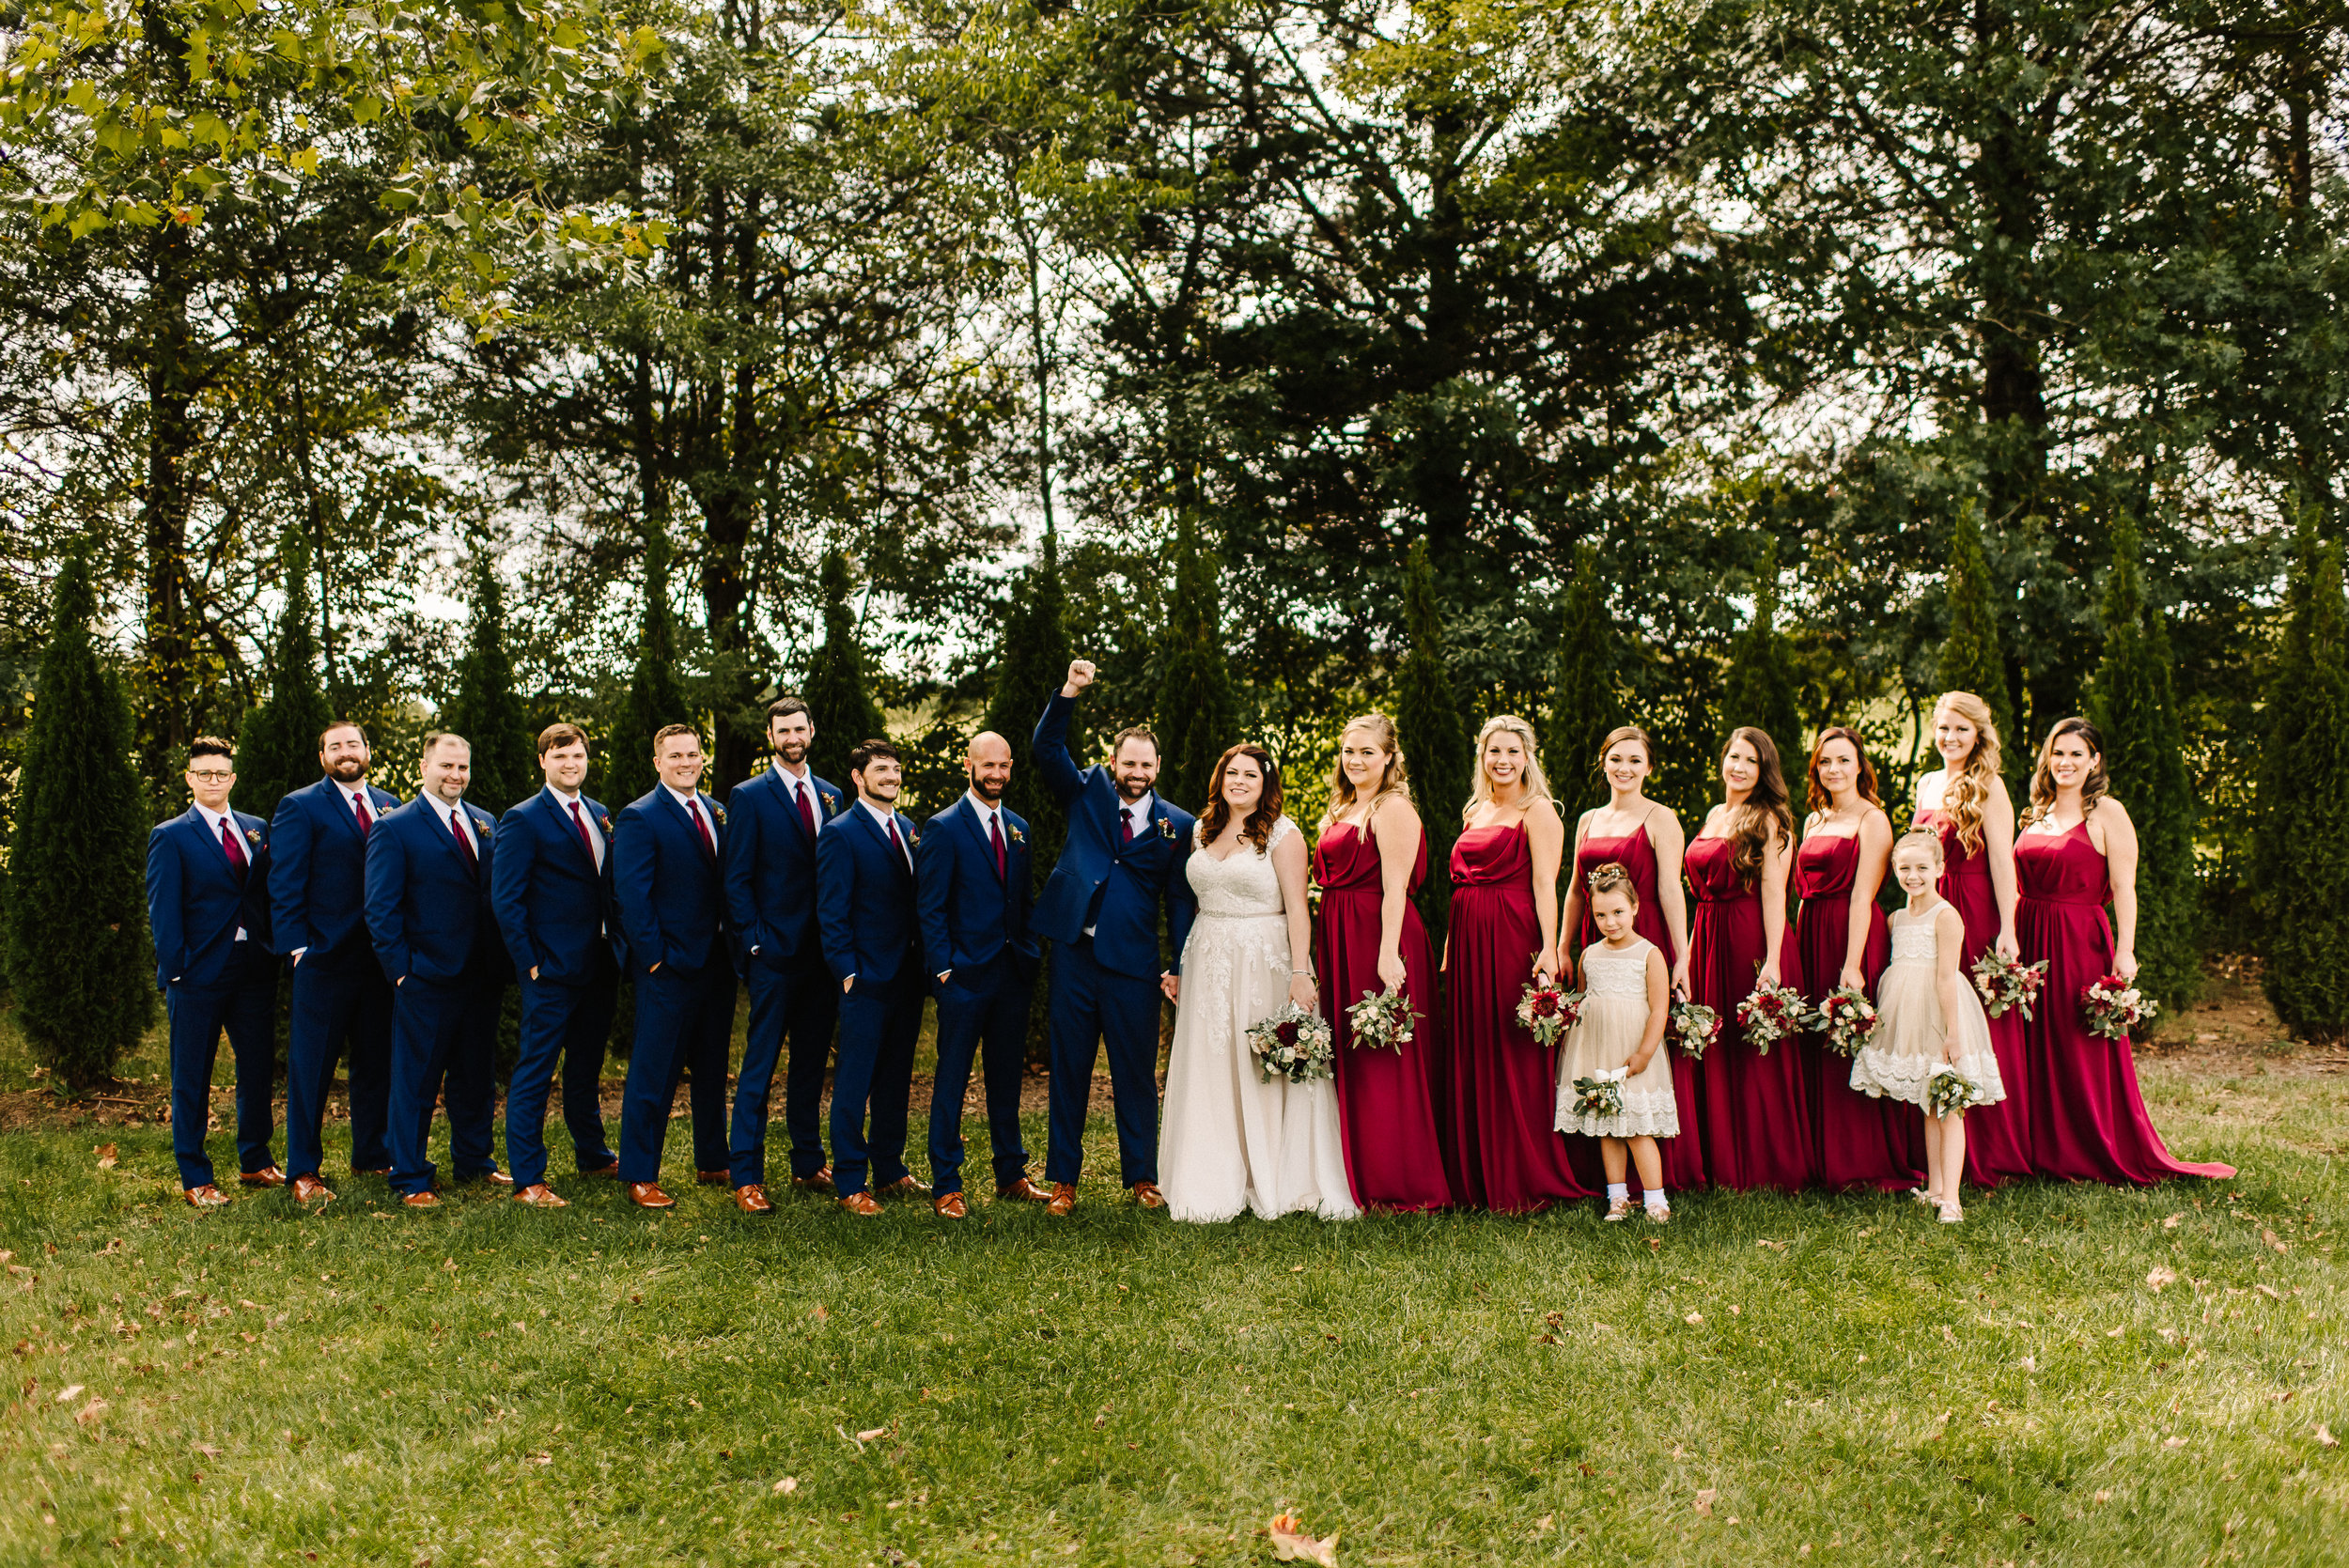 Loecher Wedding_Barn at Sycamore Farms_Ashley Benham Photography-134.jpg